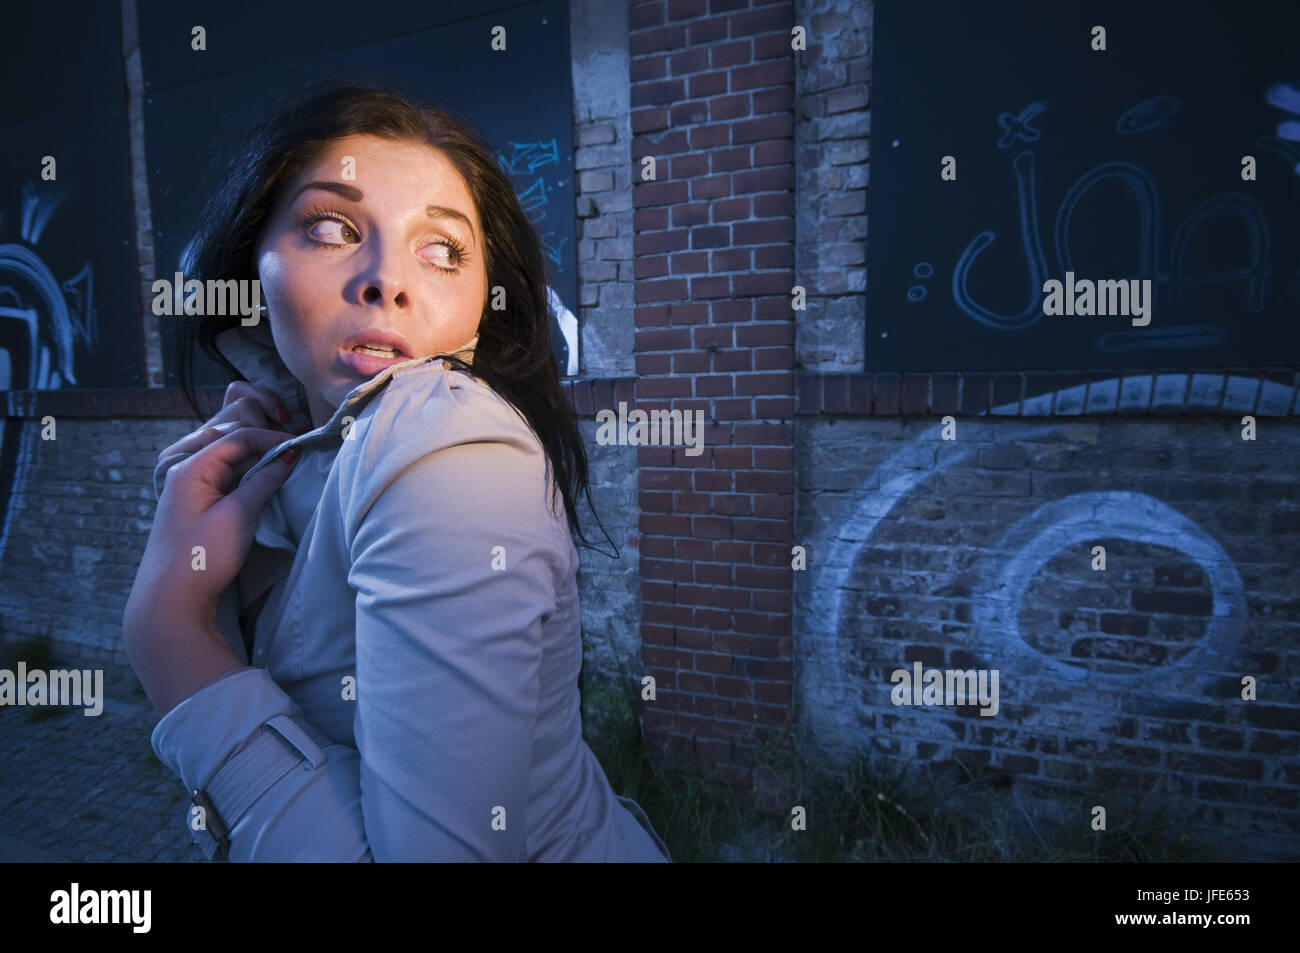 fright in the night - Stock Image